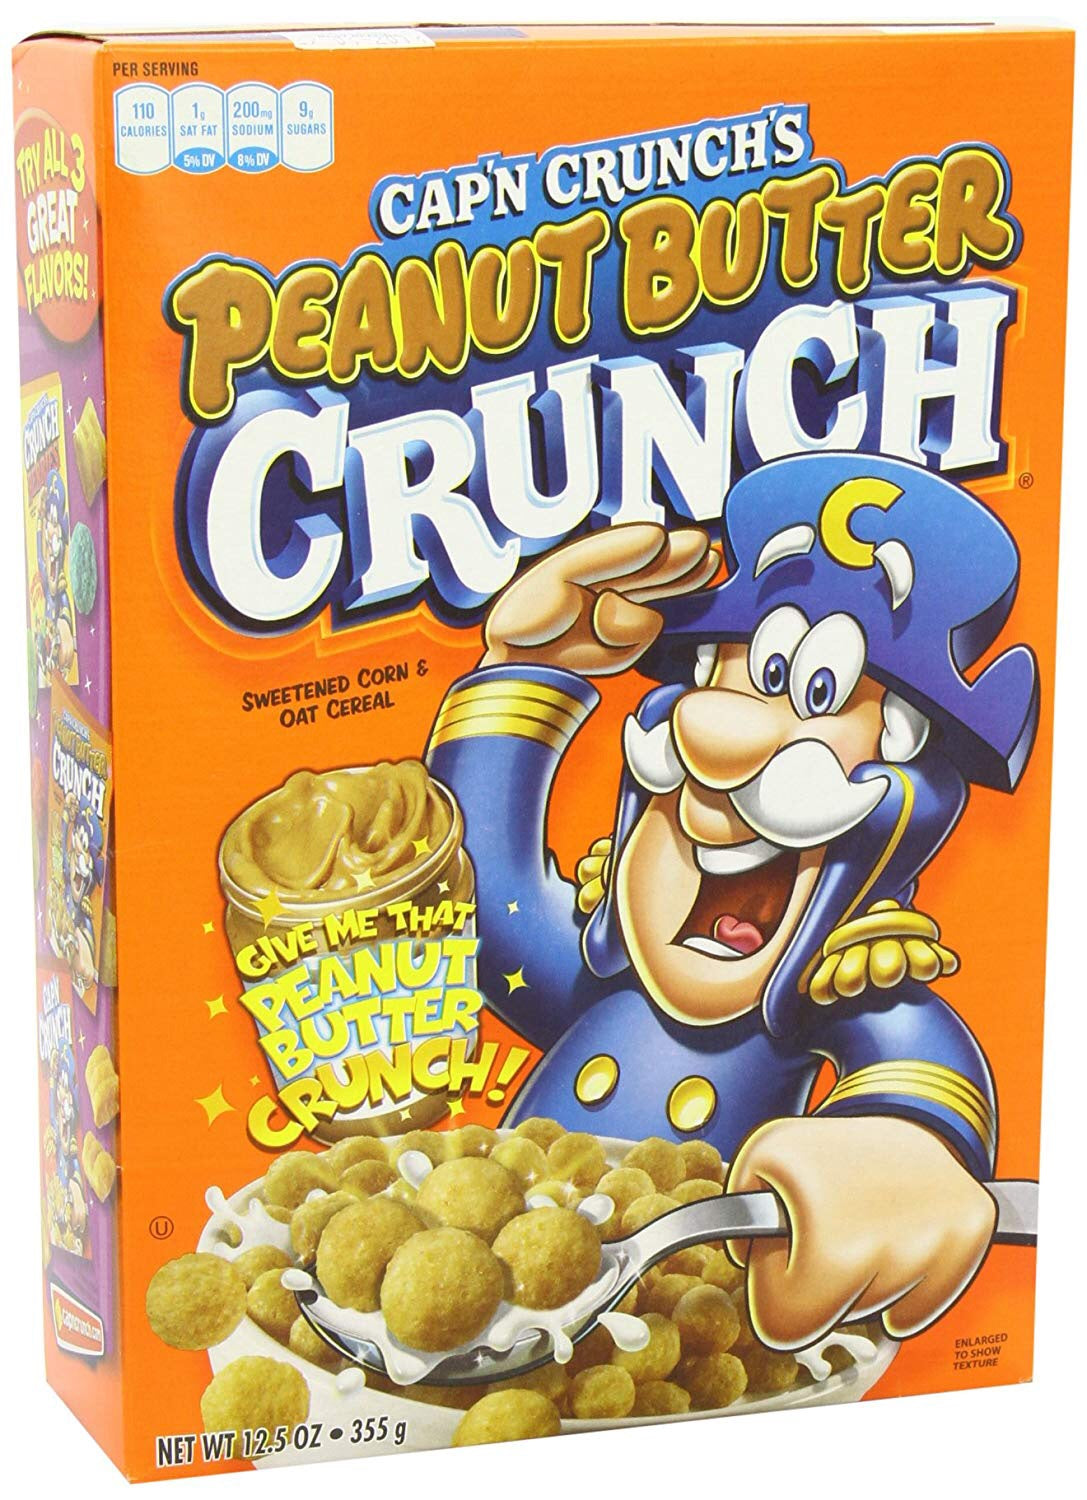 Capn Crunch - Peanut Butter